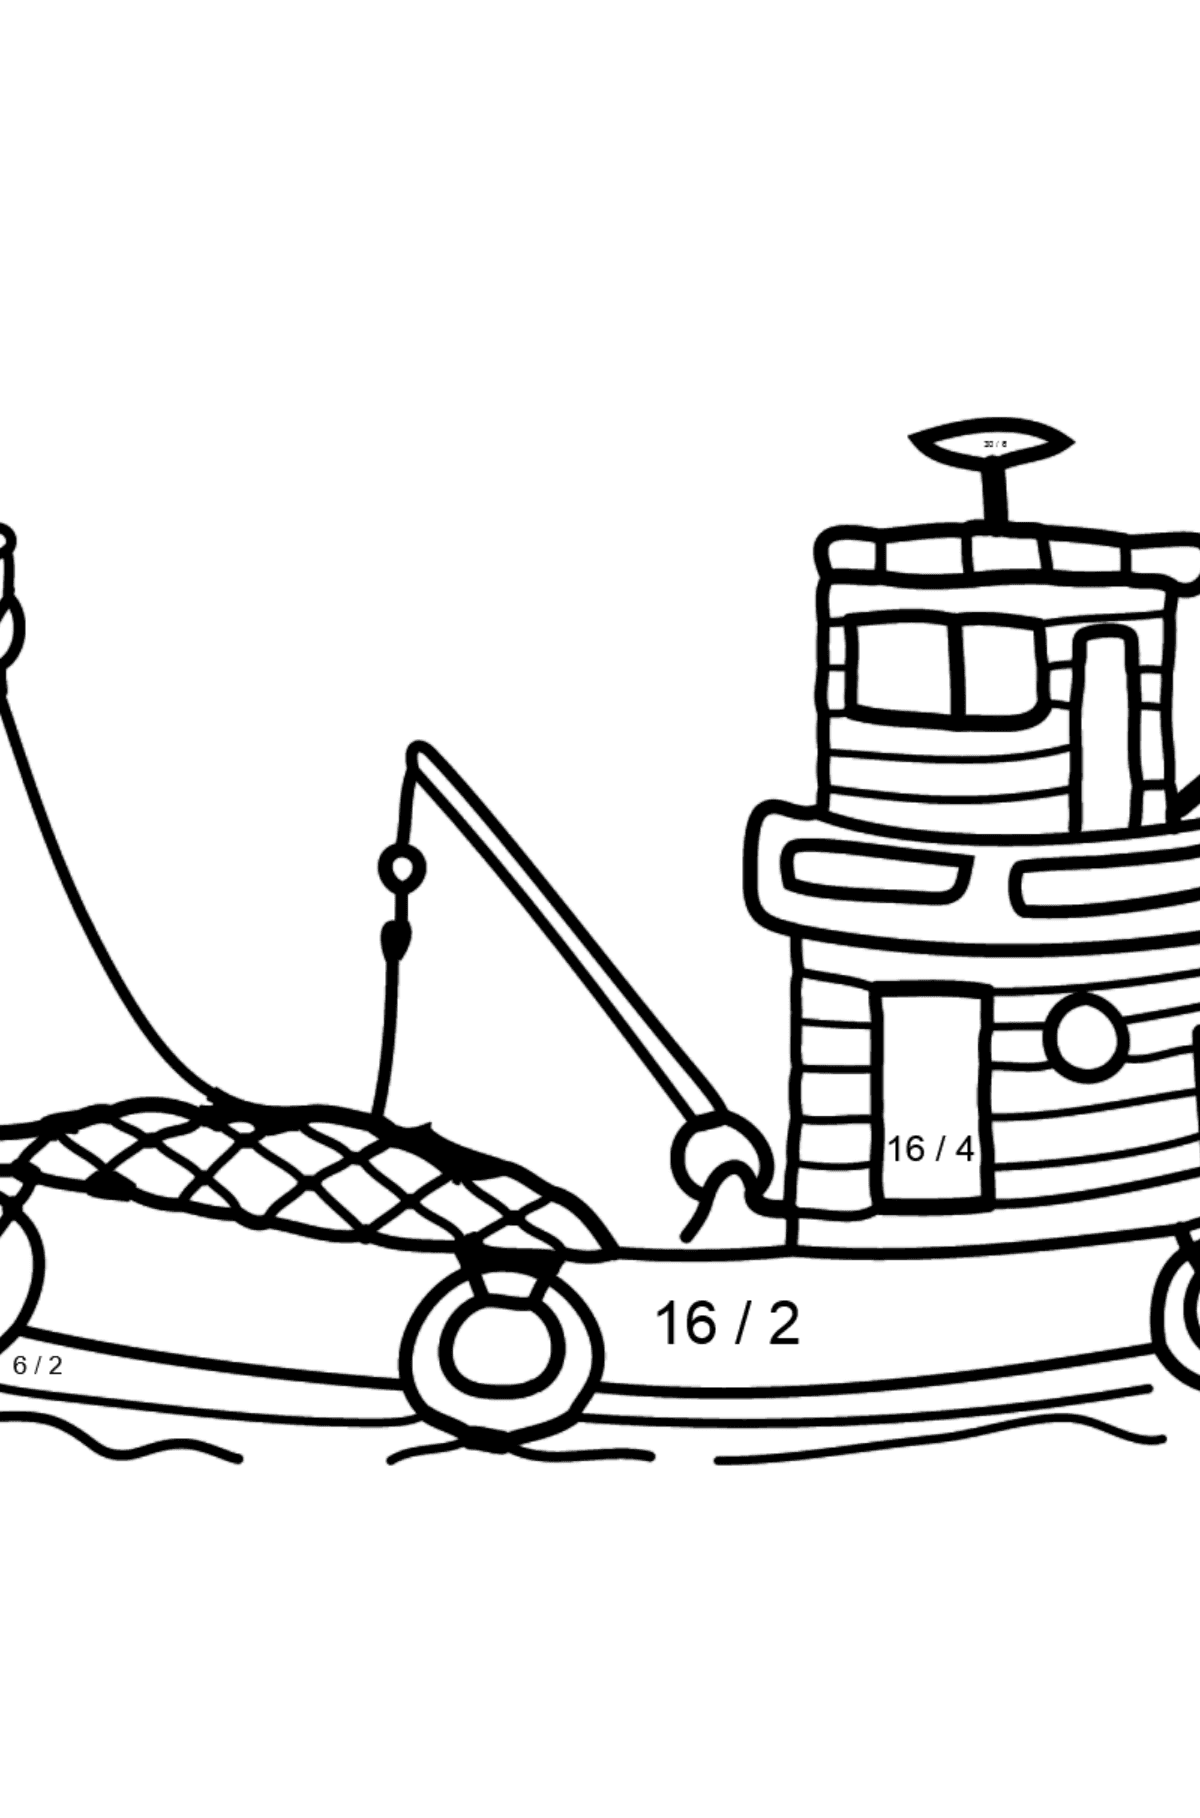 Coloring Page - A Fishing Boat - Math Coloring - Division for Kids